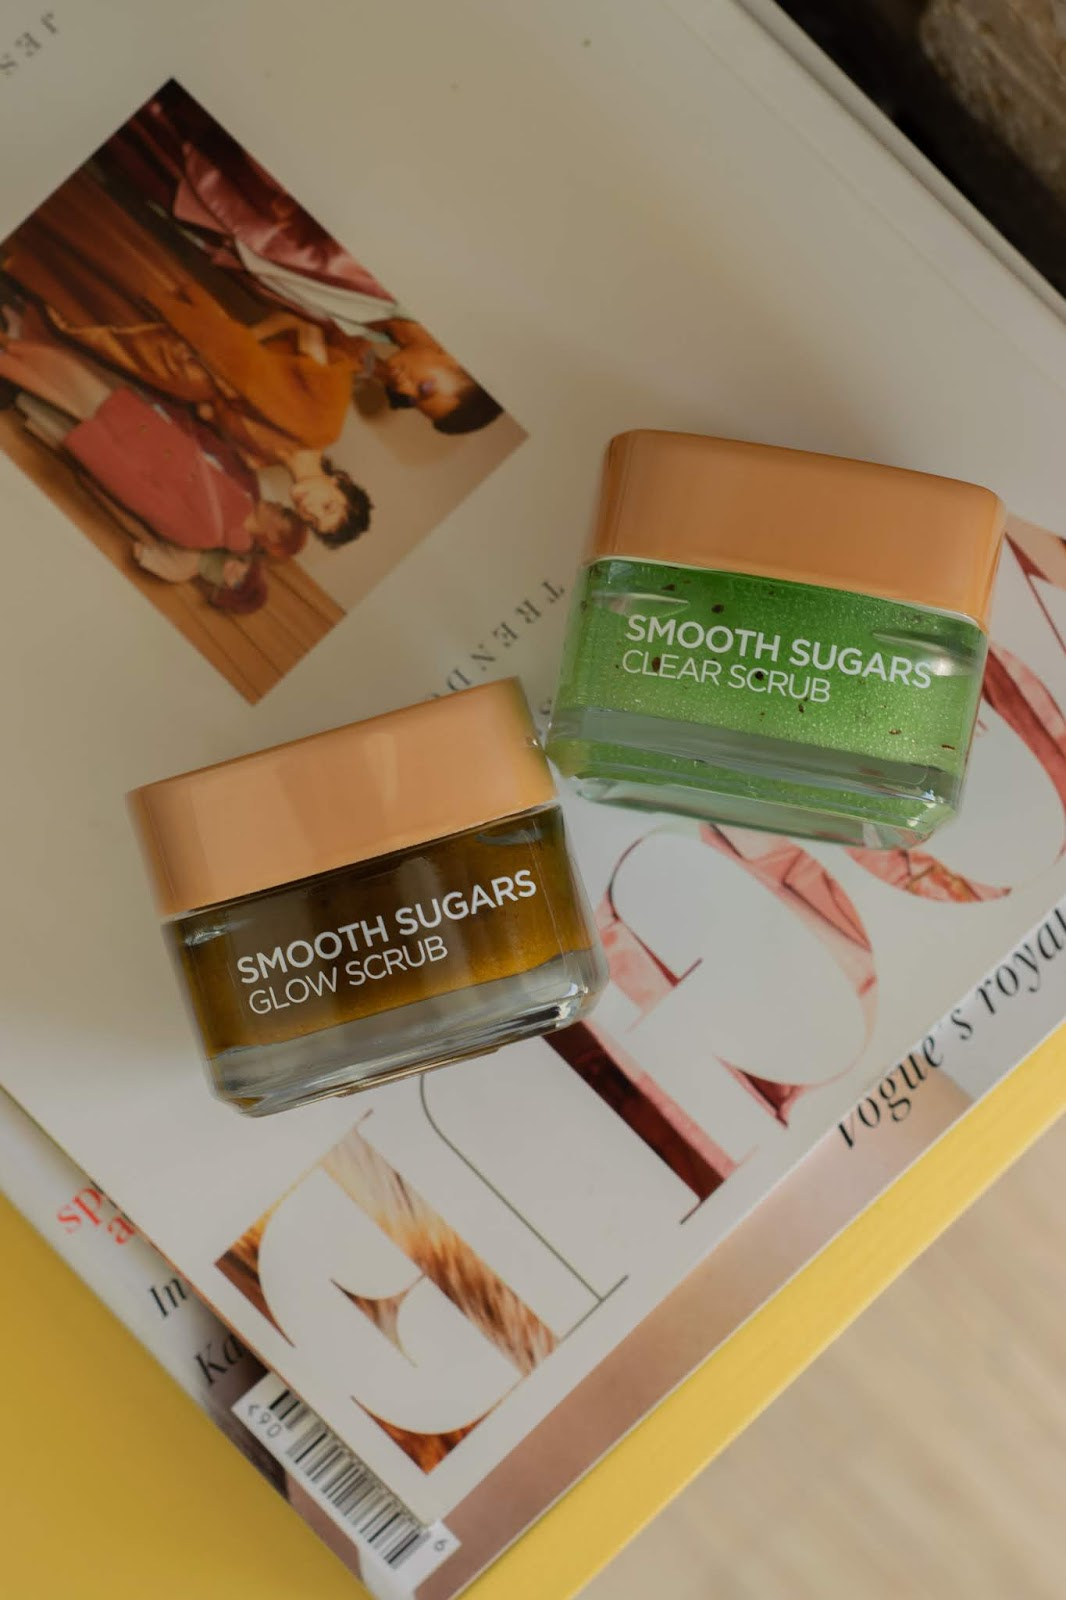 L'oreal Paris Smooth Sugar Glow Scrub | Notino